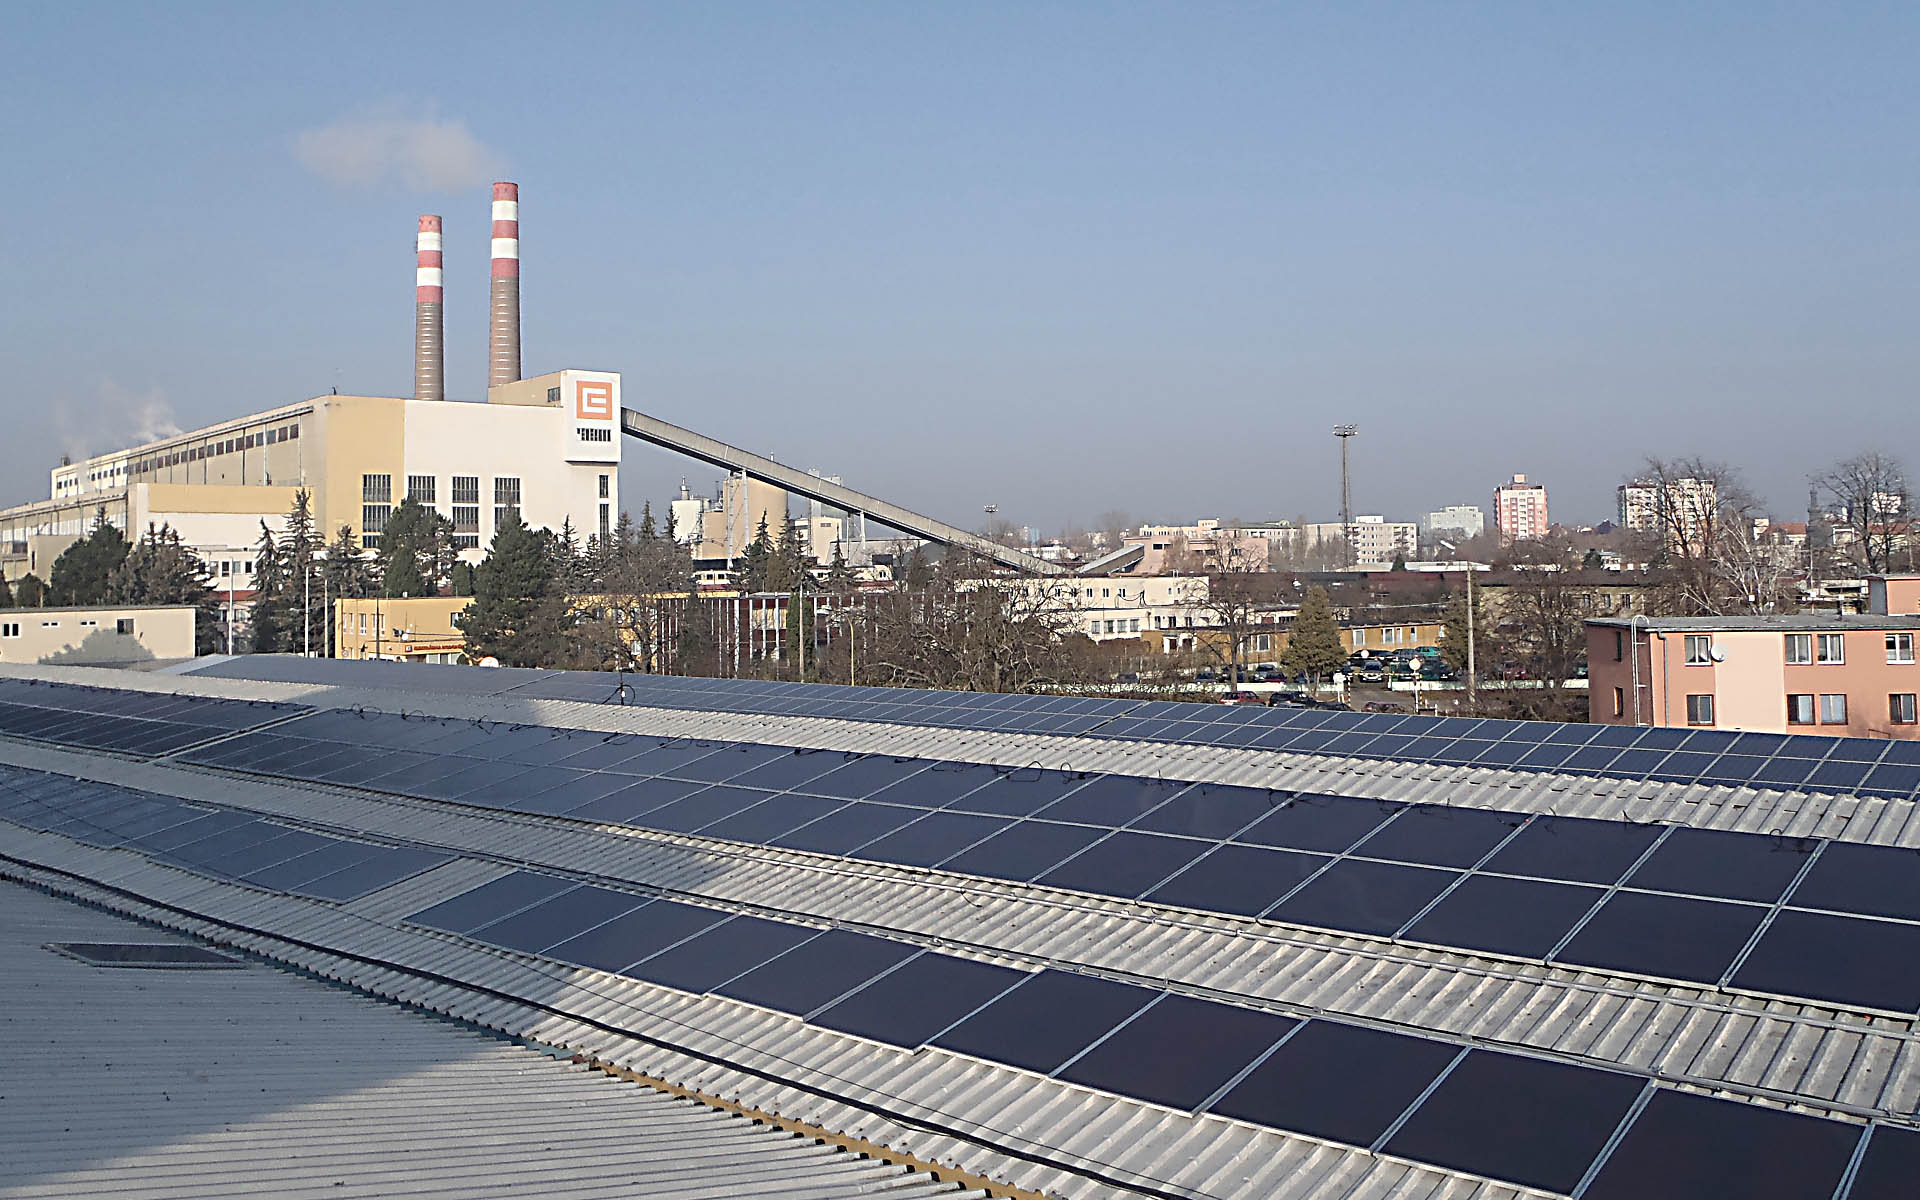 Industrial and warehouse complex, Hodonin. Installation of photovoltaic power plants with an output of 90 kWp.